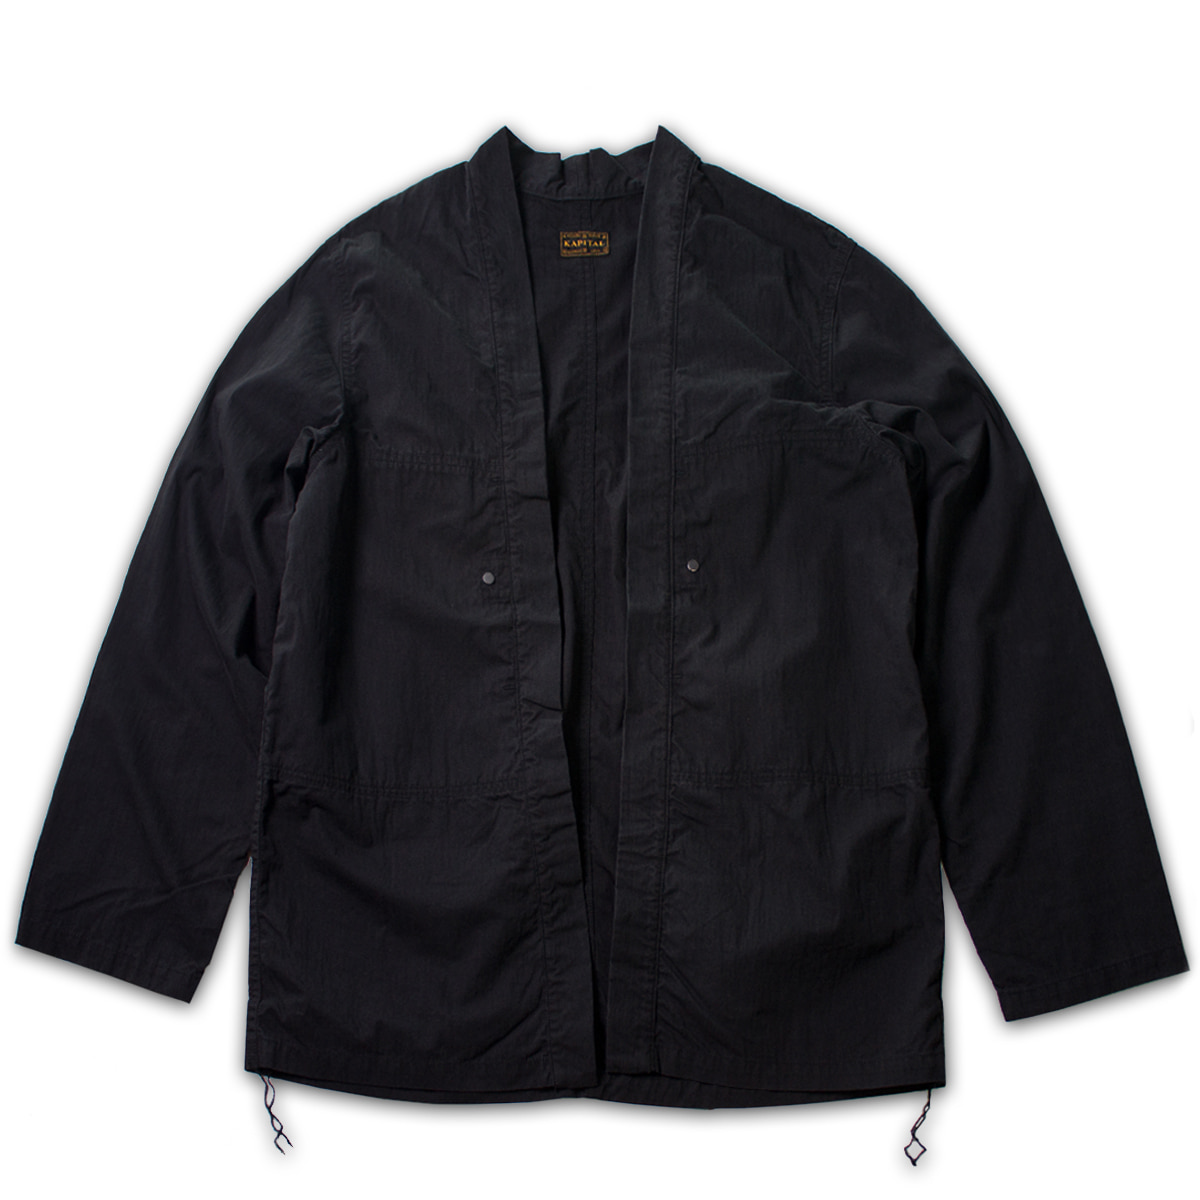 [KAPITAL] RIPSTOP AVIATOR KAKASHI SHIRT 'BLACK'